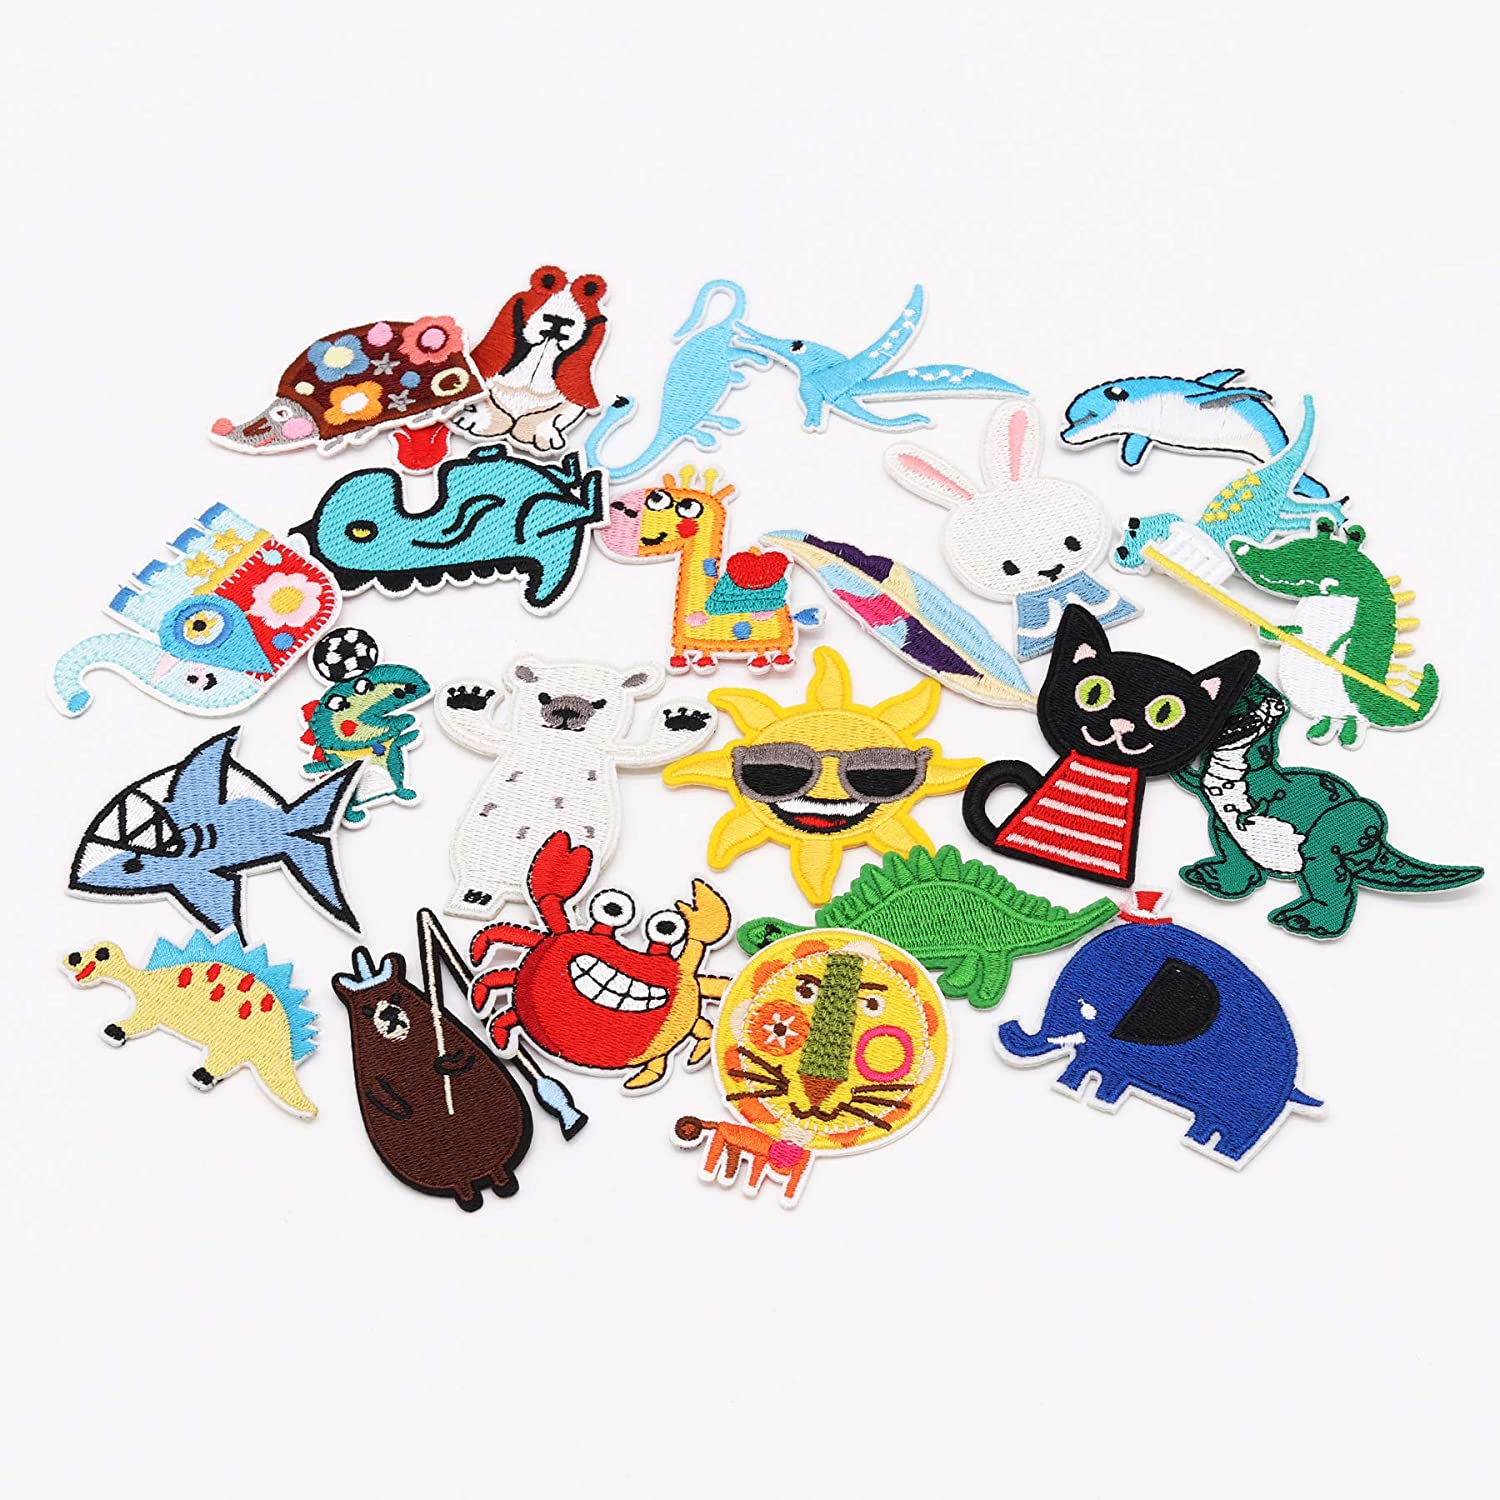 Arts C Bag,Caps Kids Clothing Butterfly B 13pcs Jacket 13pcs Multicolor Butterfly Iron on Patches Embroidered Motif Applique Assorted Size Decoration Sew On Patches Custom Patches for DIY Jeans